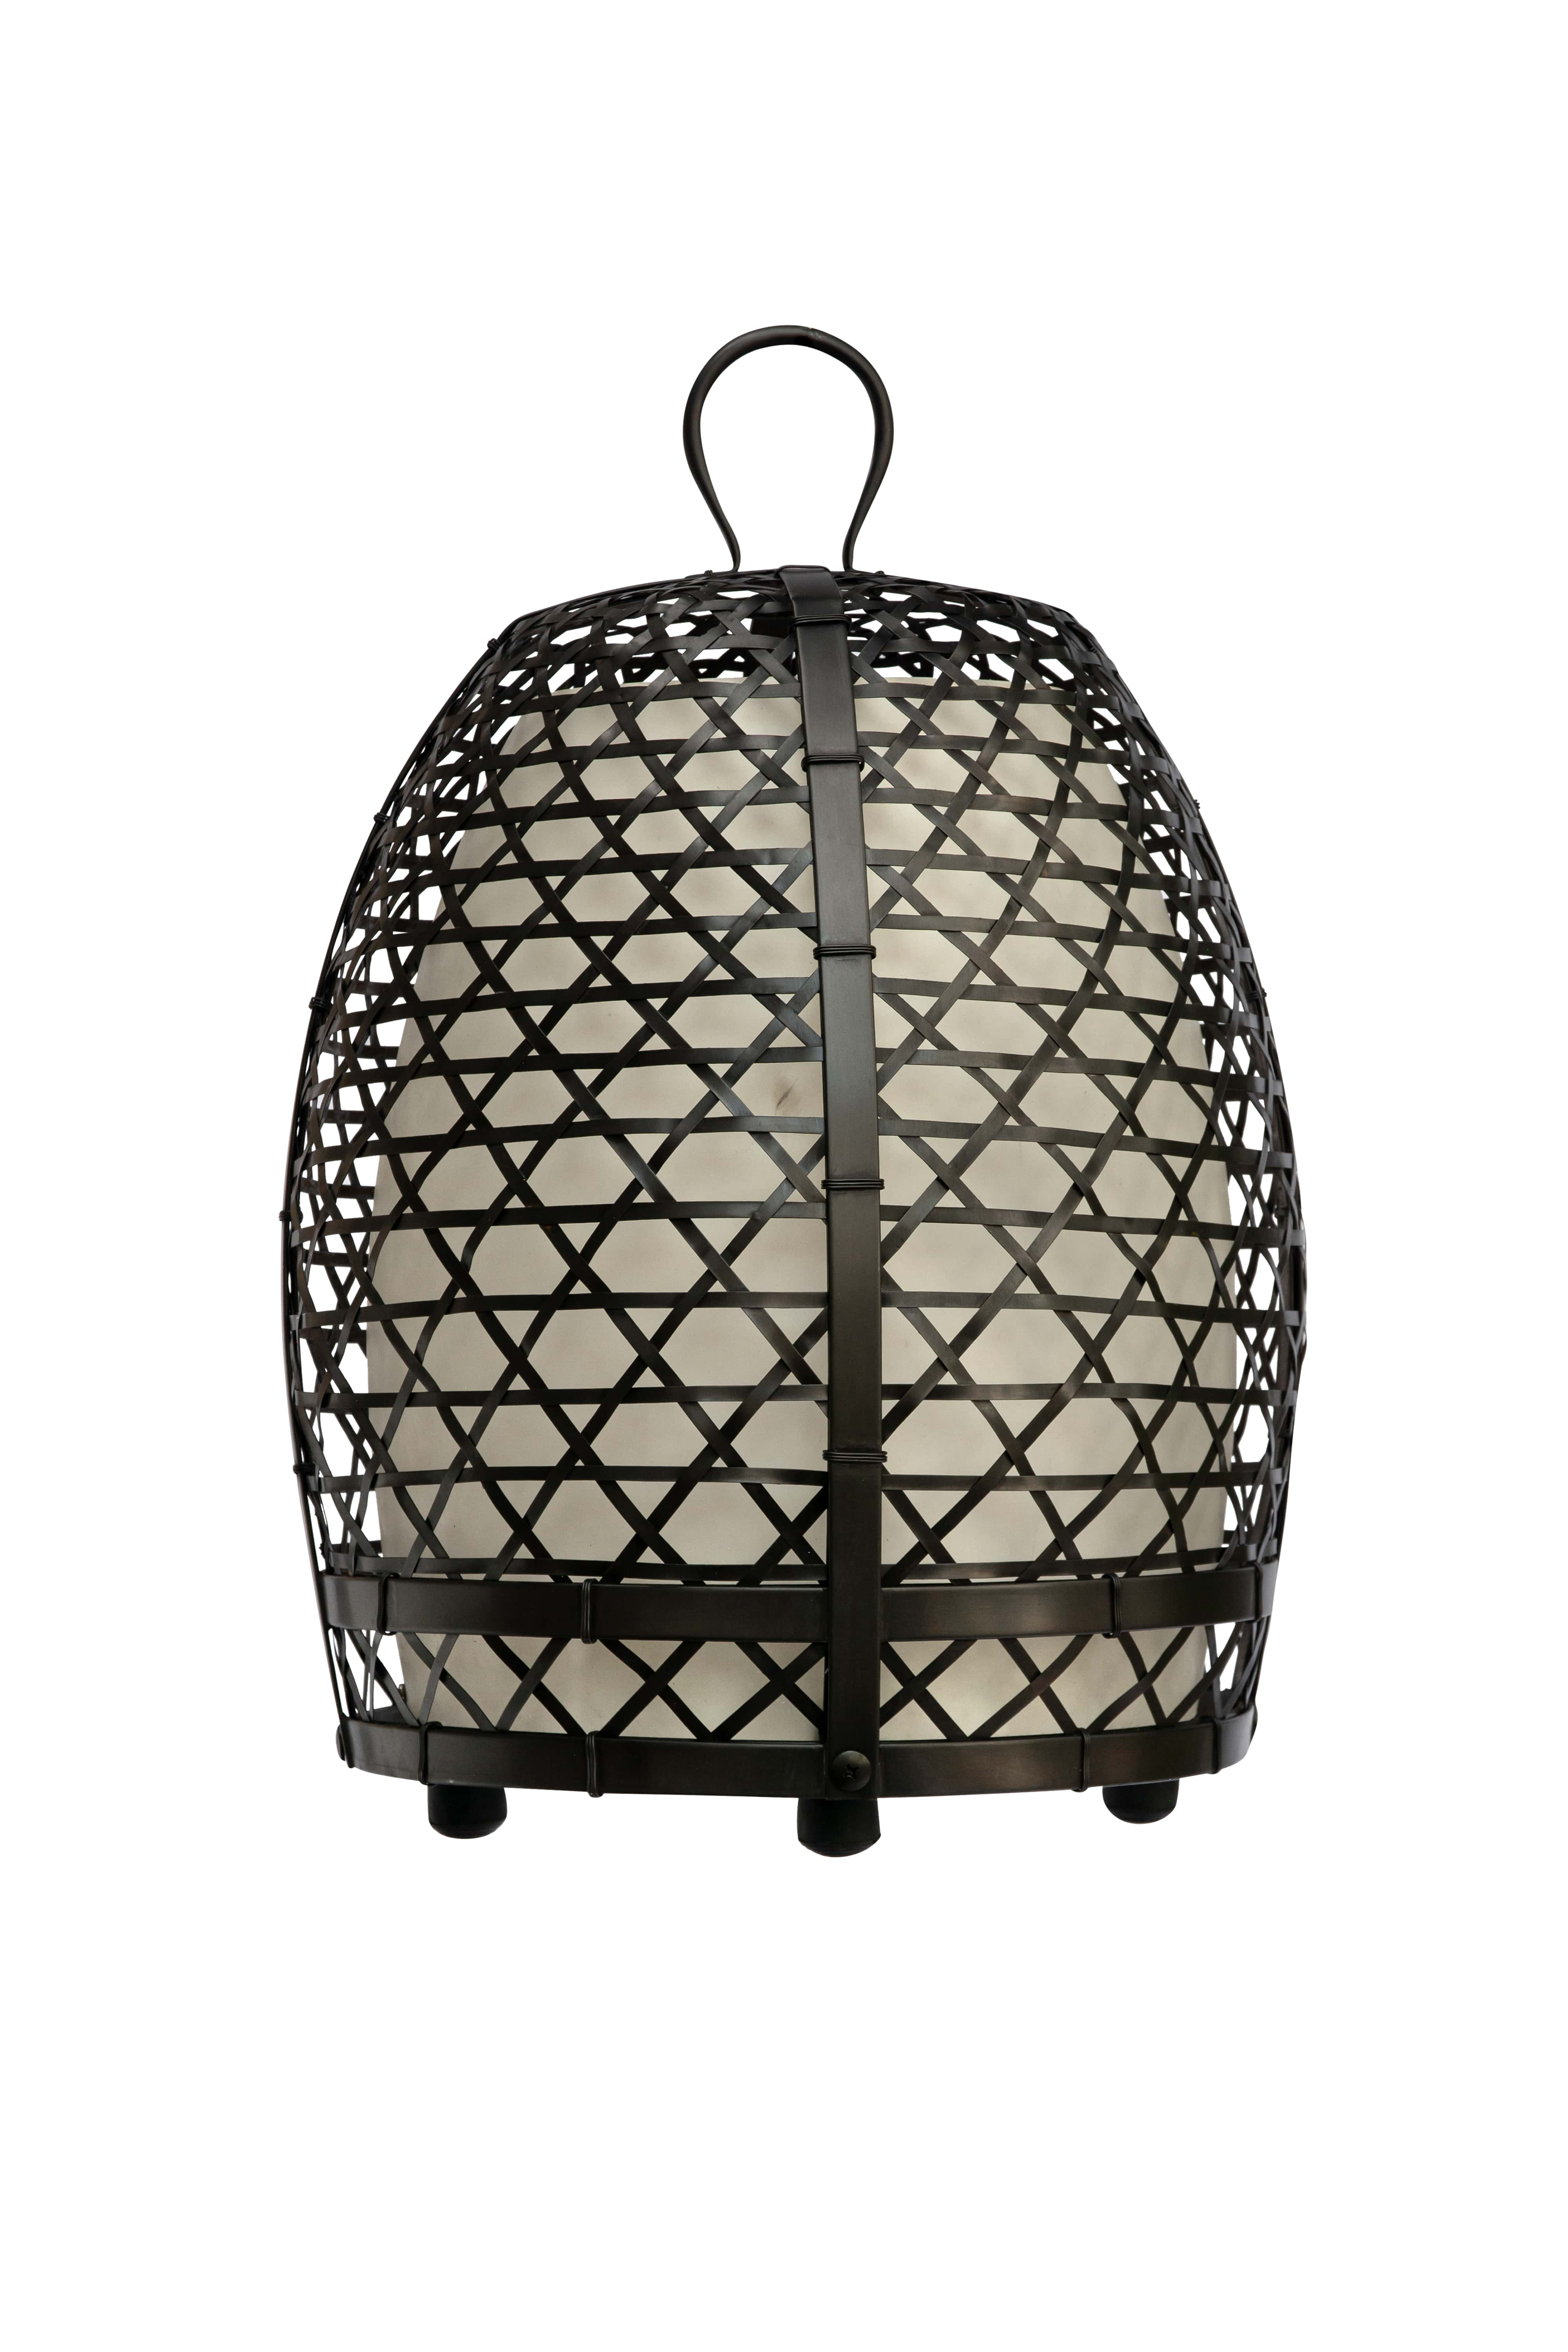 Rooster cage lamp, 69 Cm